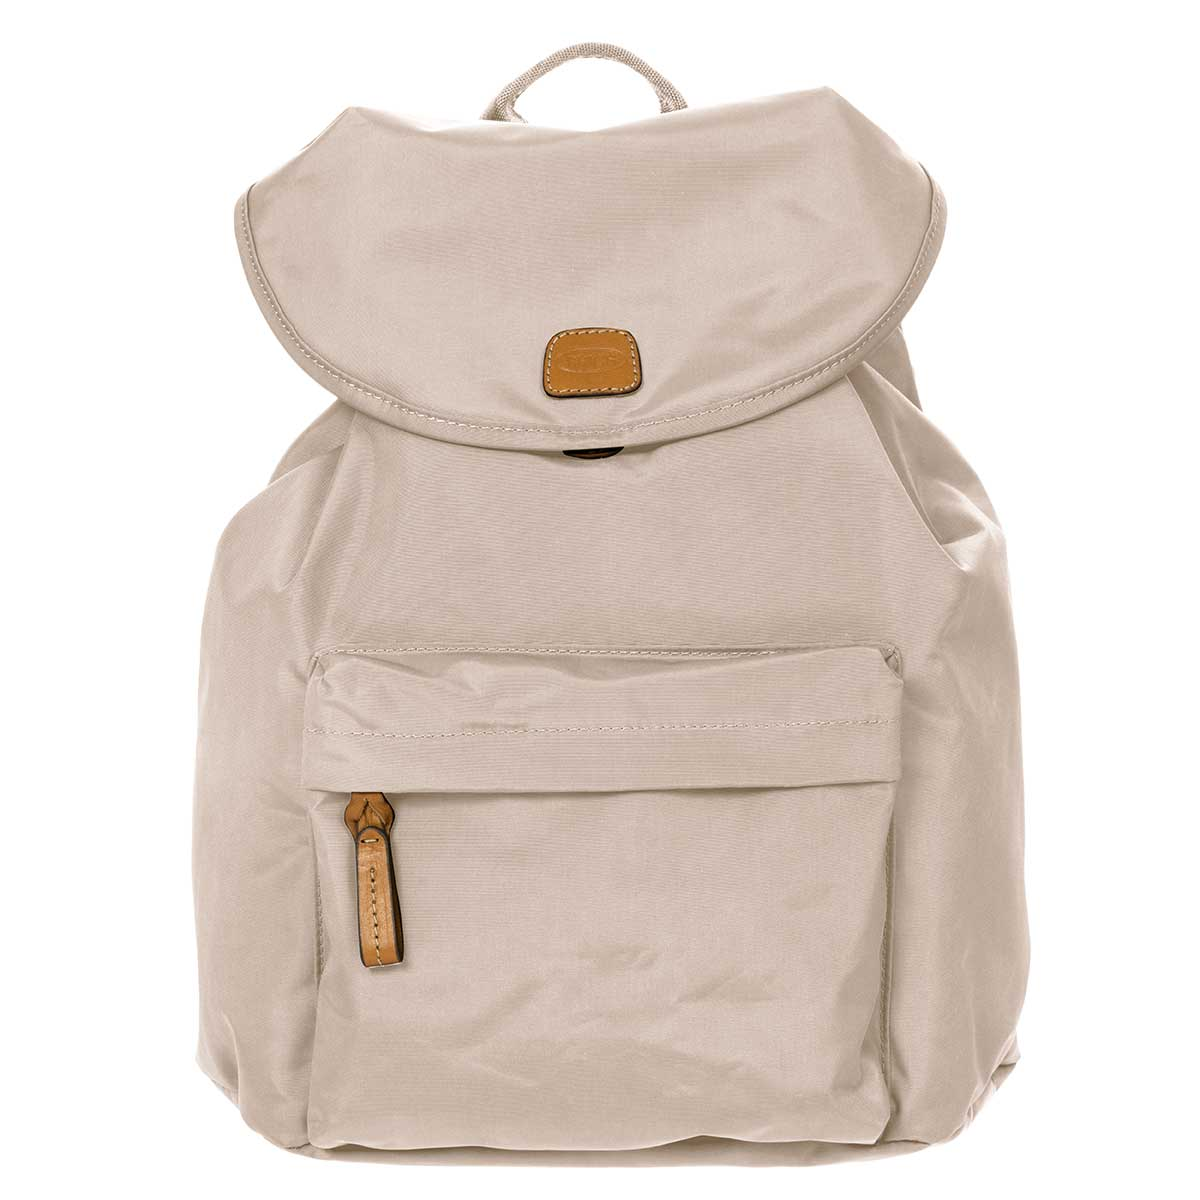 X-Bag City Backpack - Papyrus   BRIC'S Travel Bags